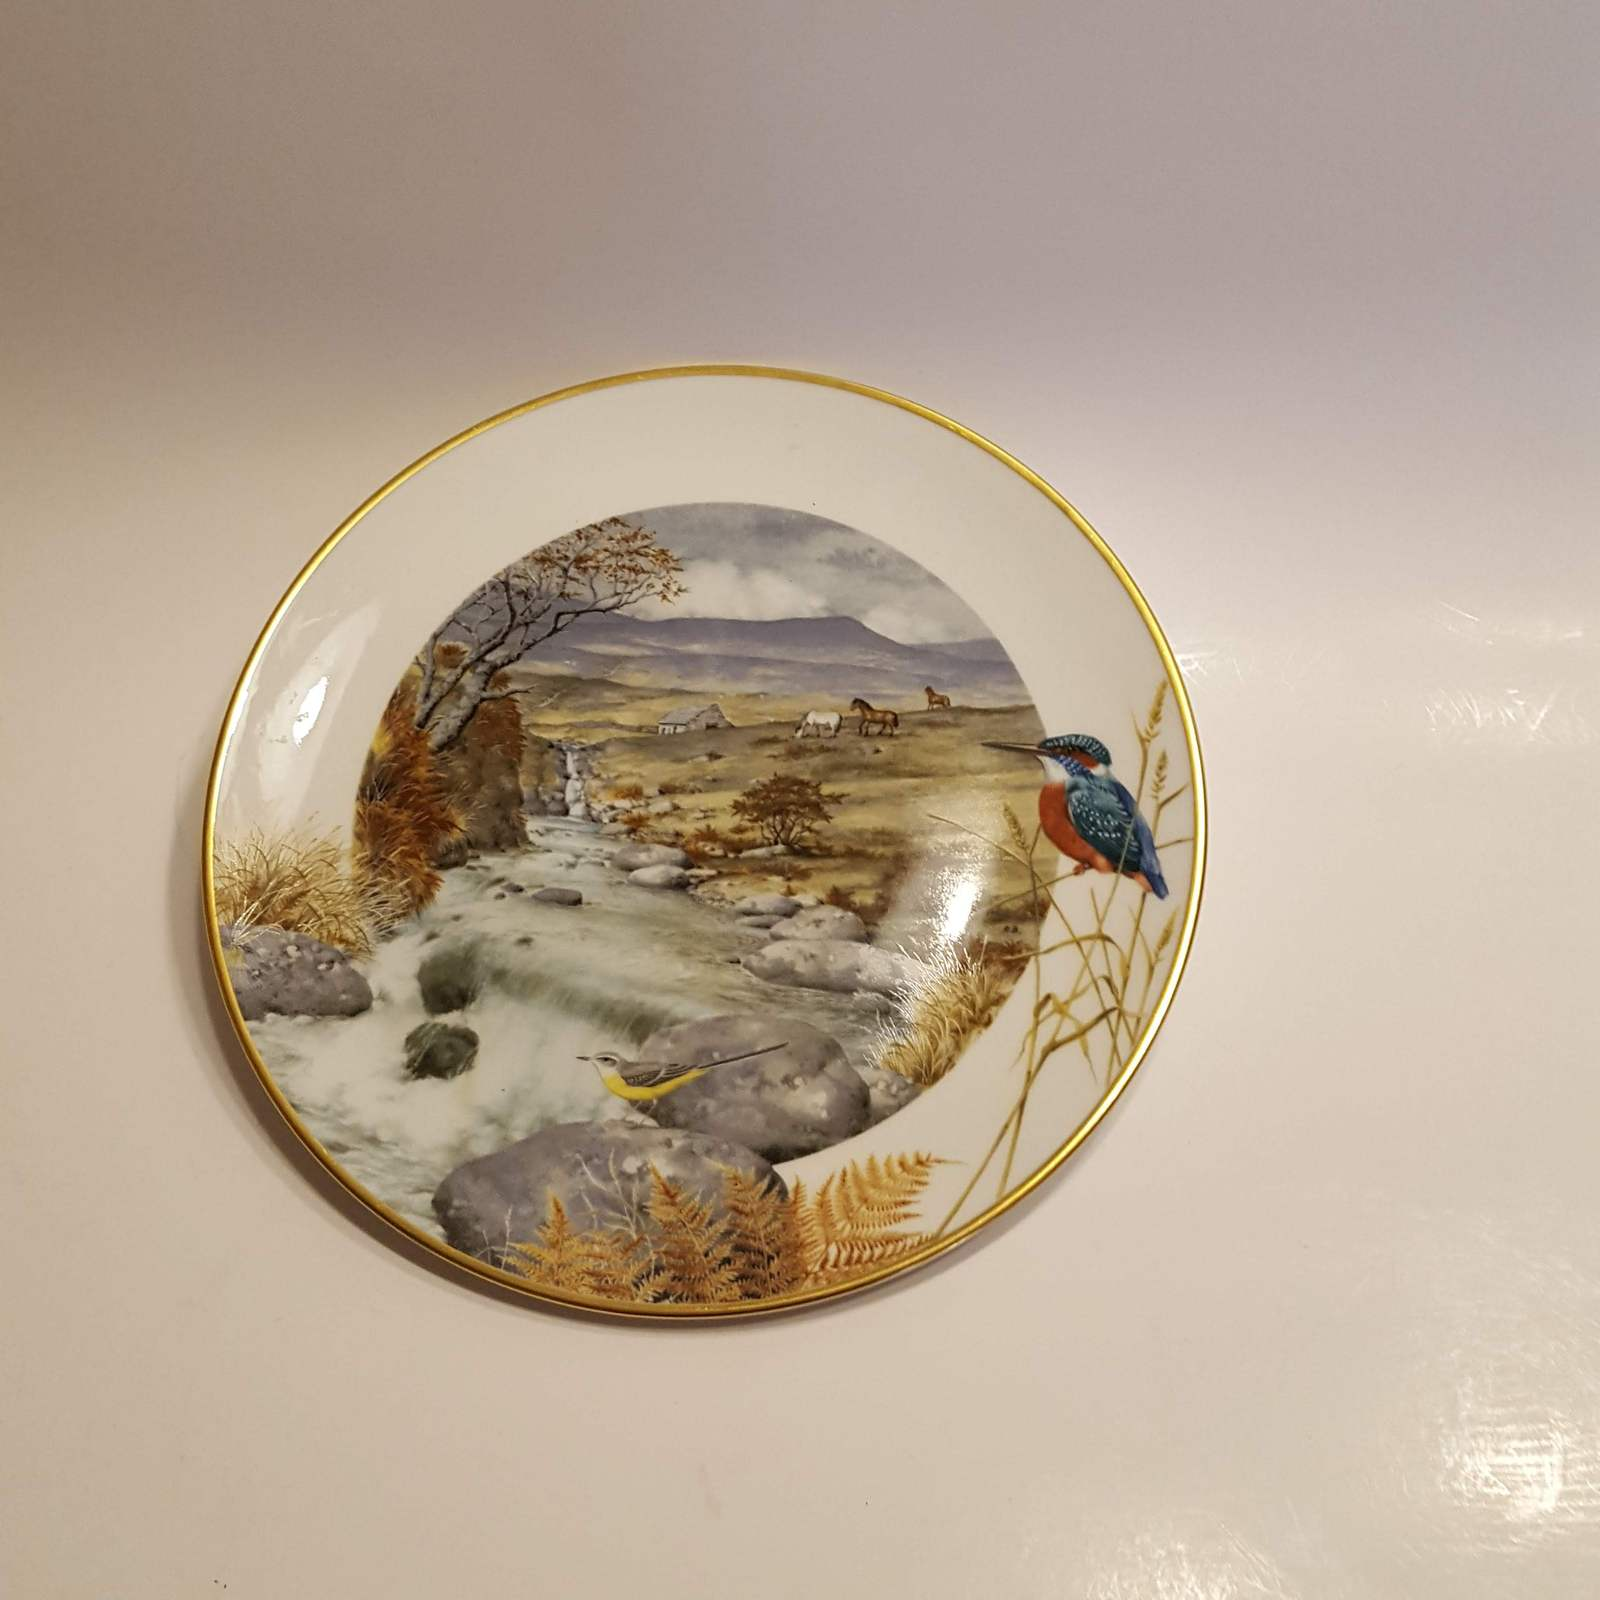 Primary image for Franklin Porcelain Plate A secluded stream in November @1979 by Peter Banett